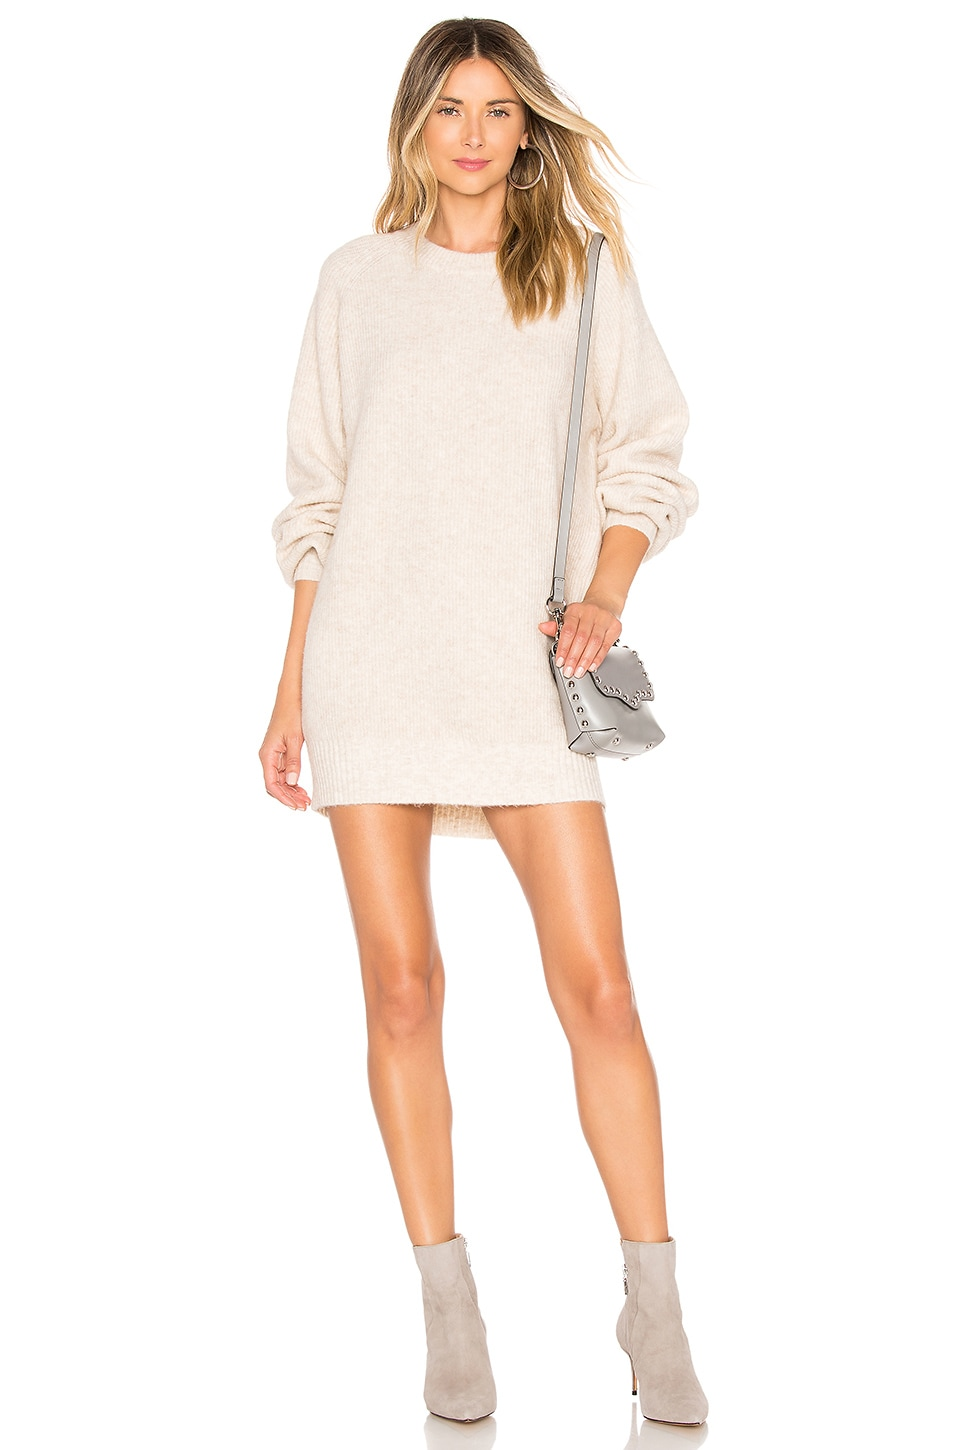 CHRISSY TEIGEN X Revolve Mason Sweater in Cream